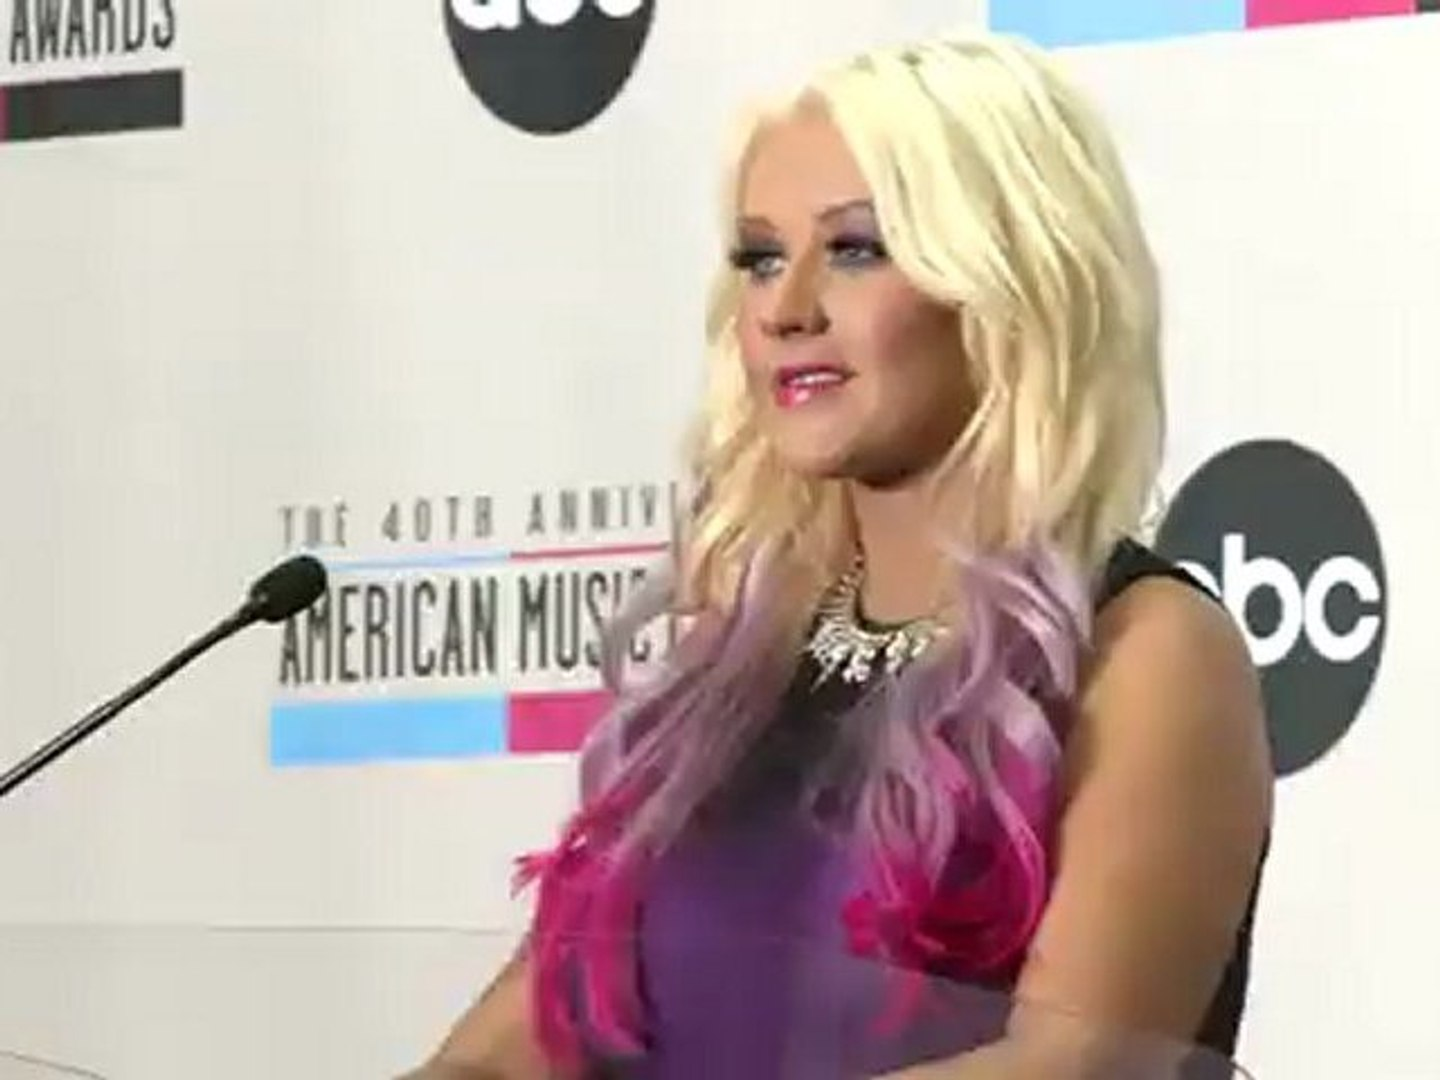 Christina Aguilera Shows Her Assets @ the 2012 AMA Press Conference 1